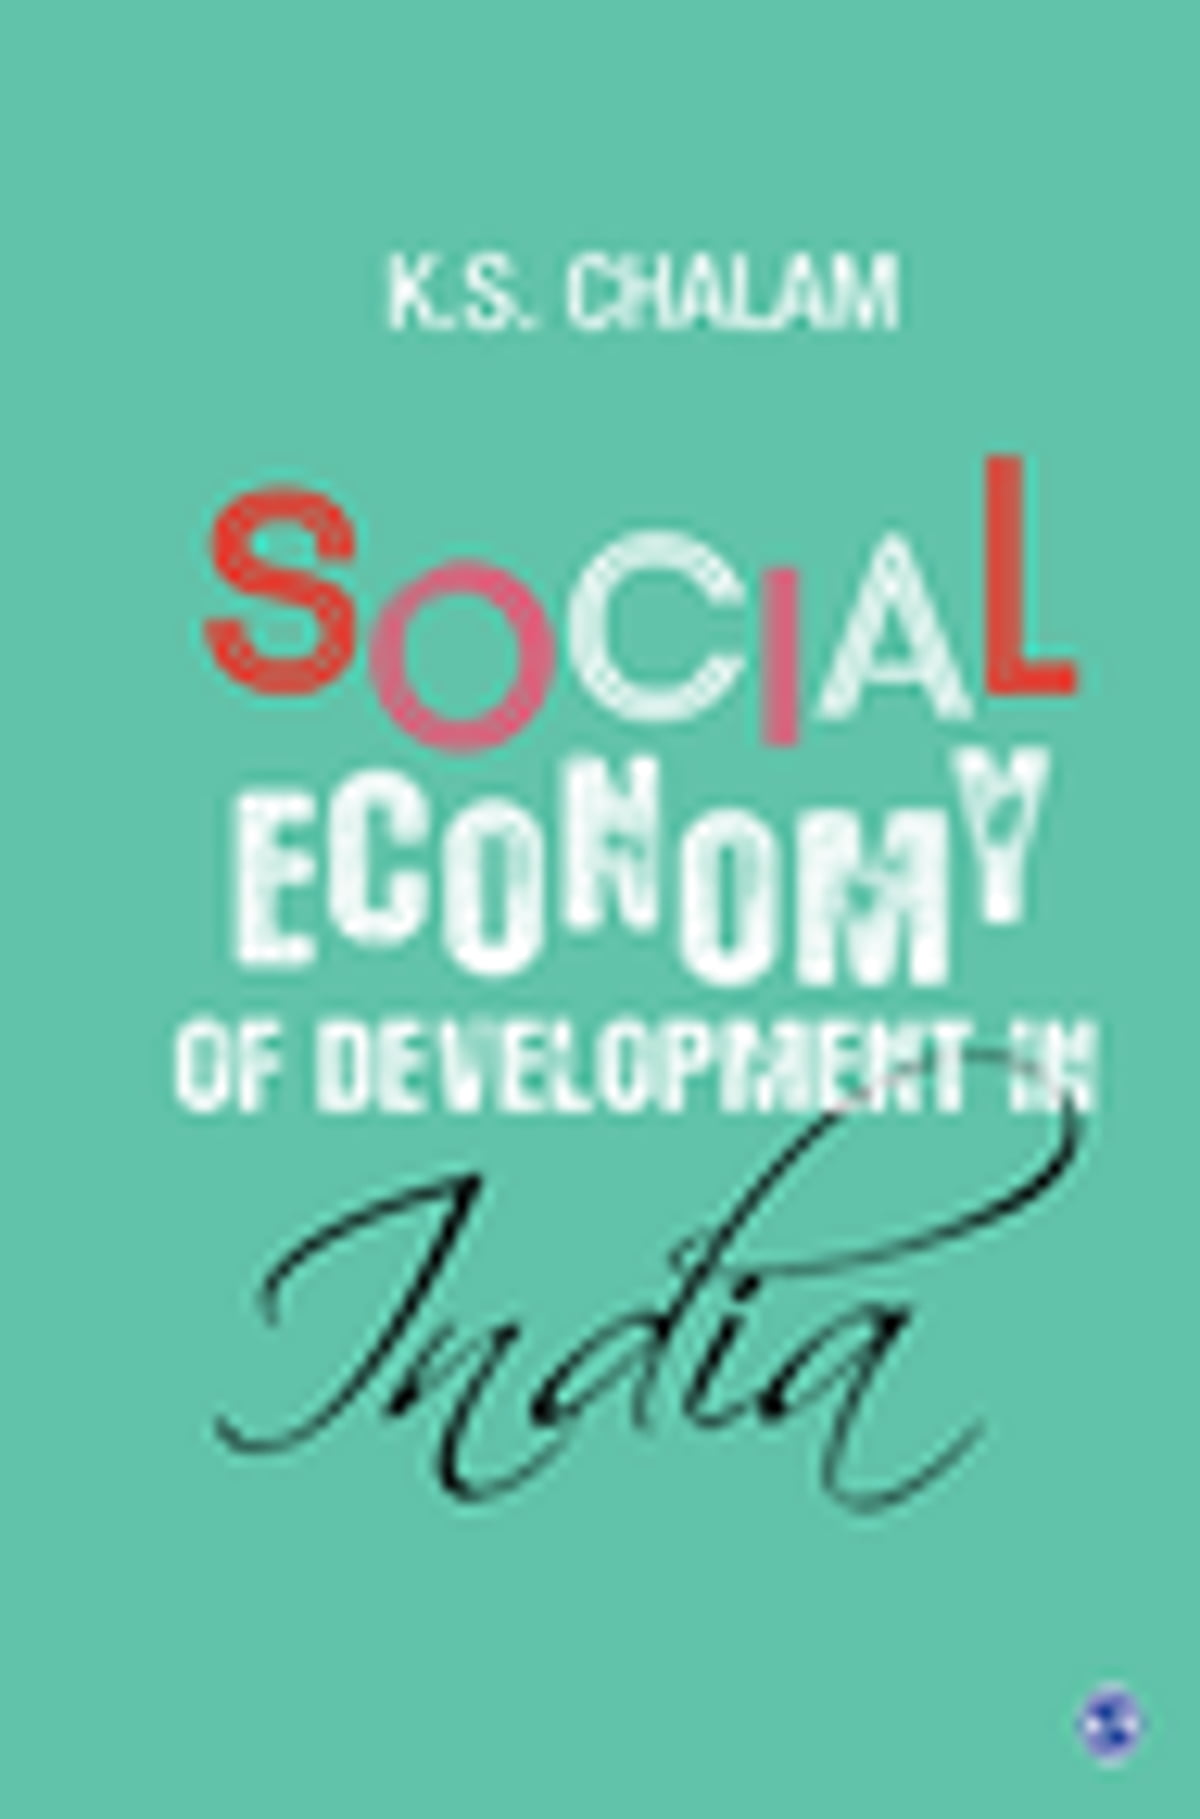 economic reforms and social exclusion chalam k s